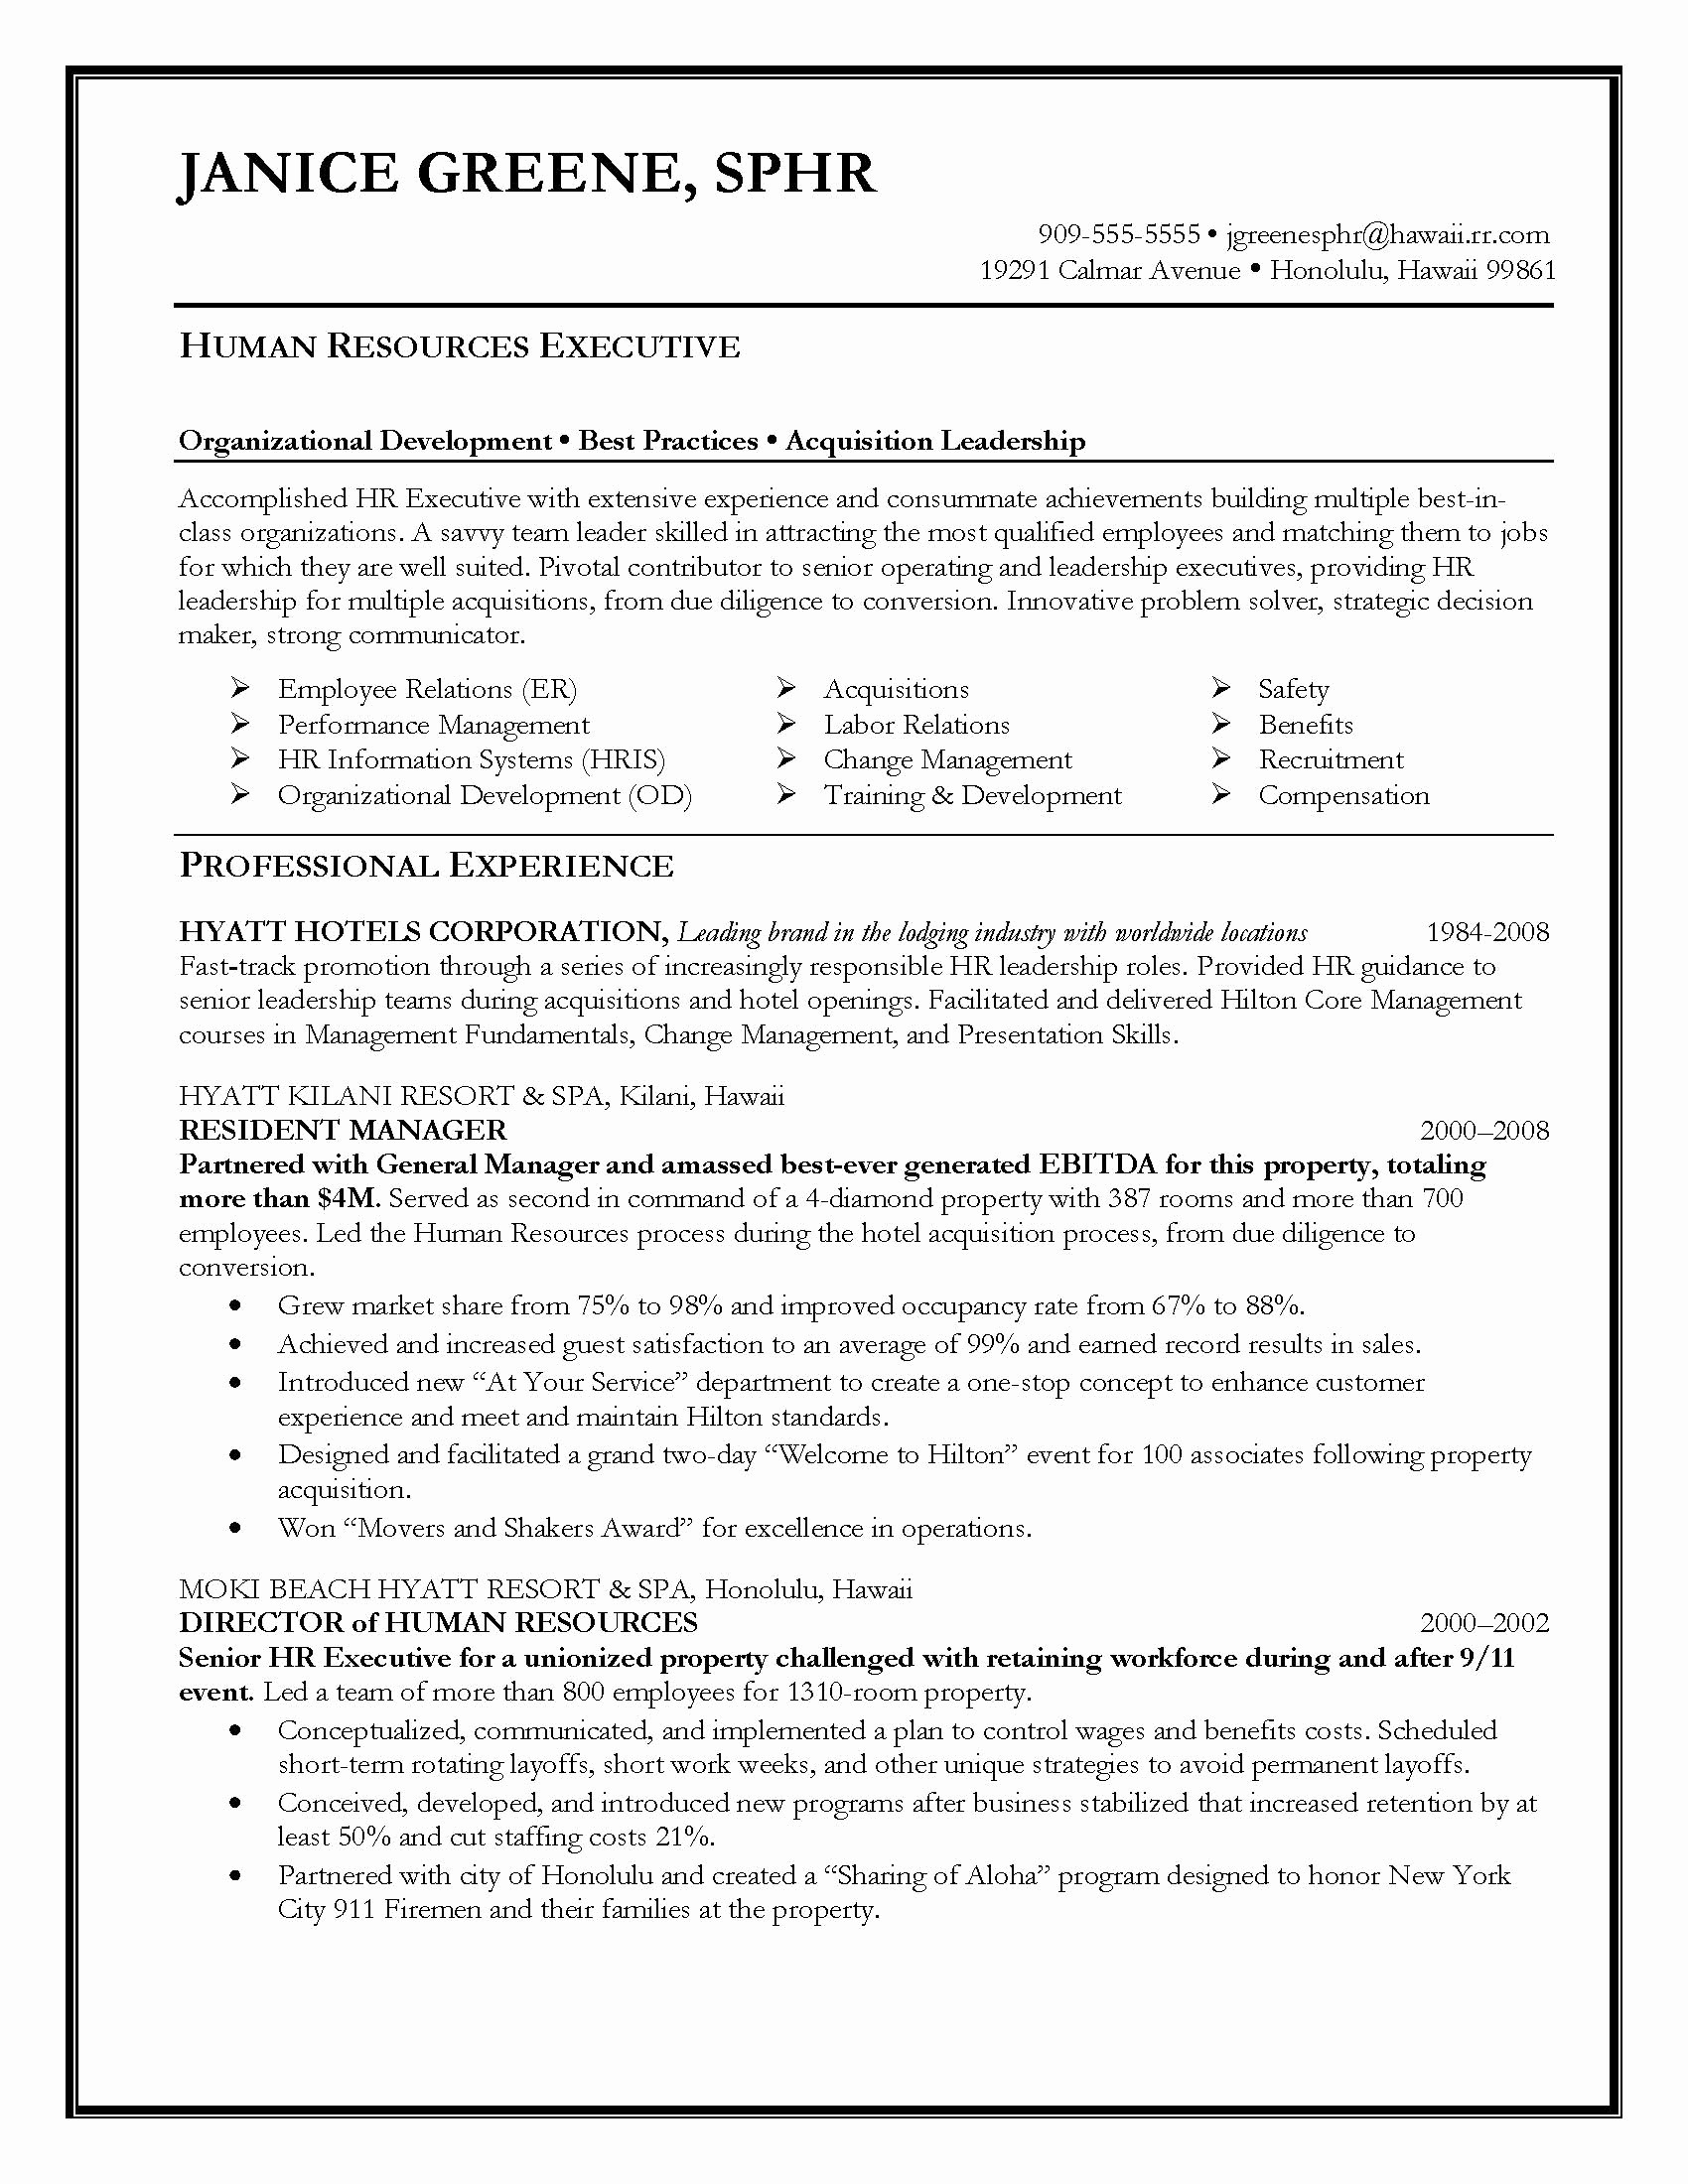 Resume Leadership Skills - Leadership Skills Resume New 20 Leadership Skills Examples for